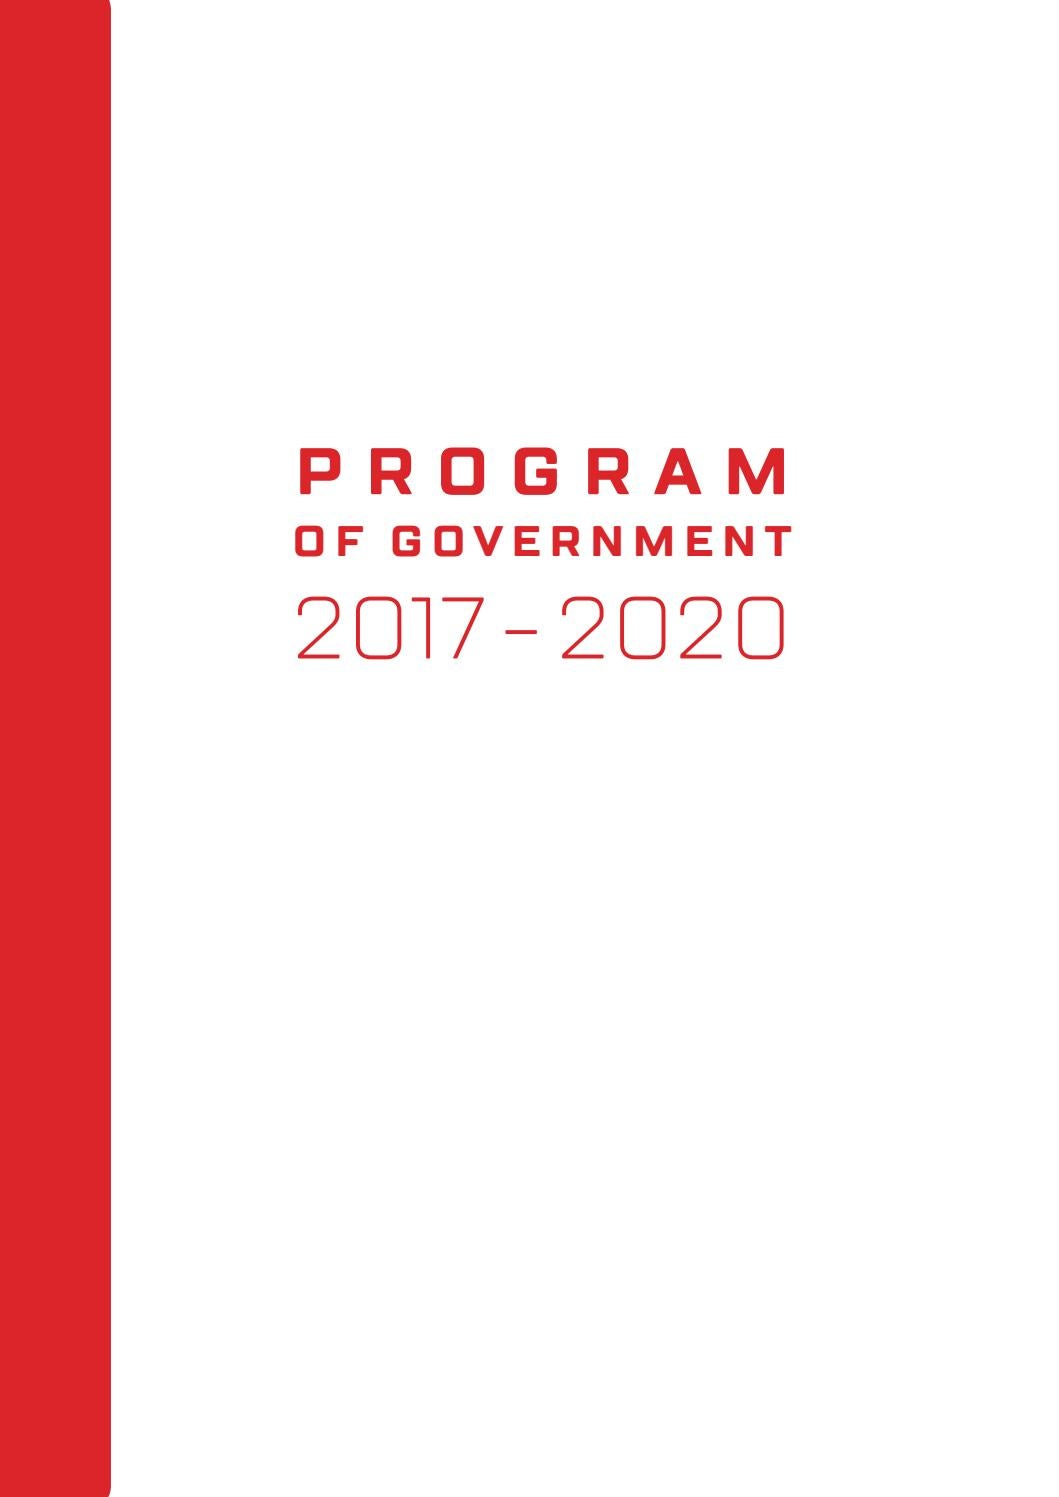 Program of the Government of the Republic of Macedonia (2017